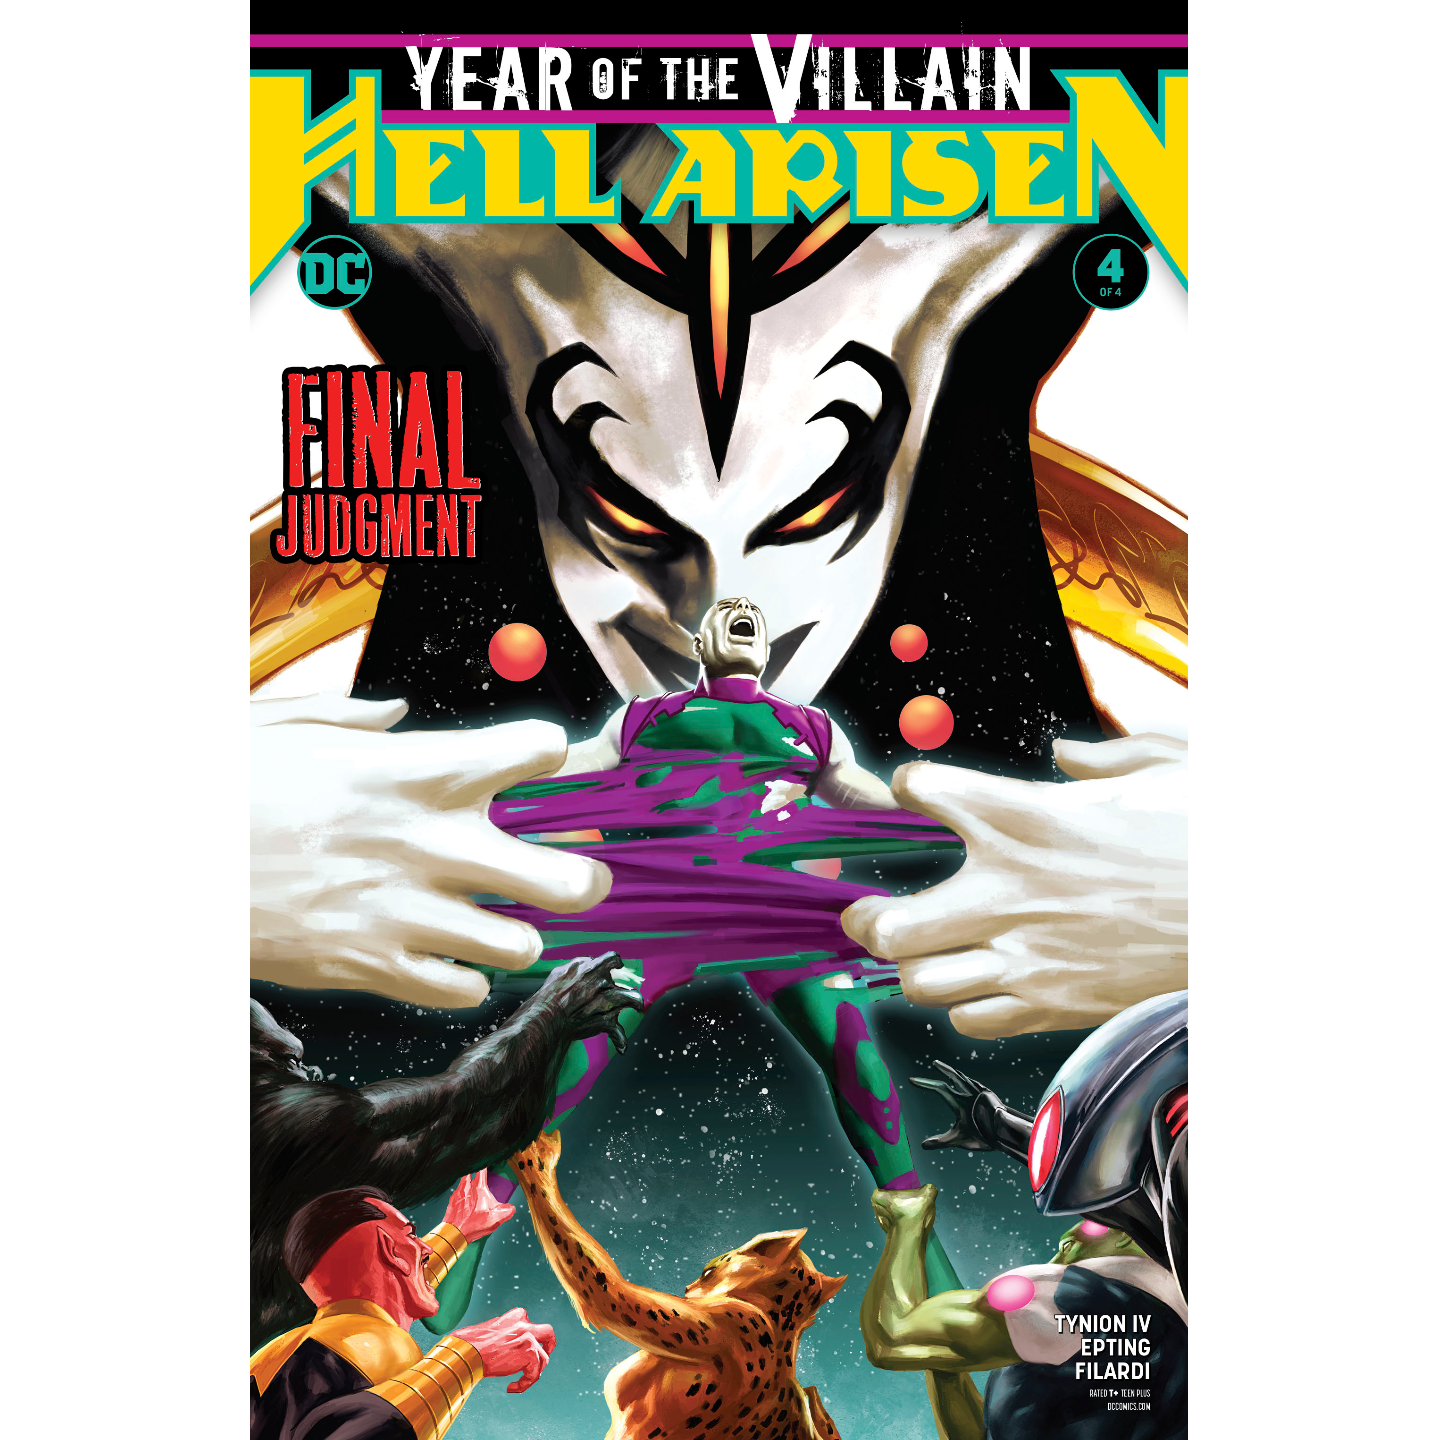 YEAR OF THE VILLAIN HELL ARISEN #4 (OF 4)